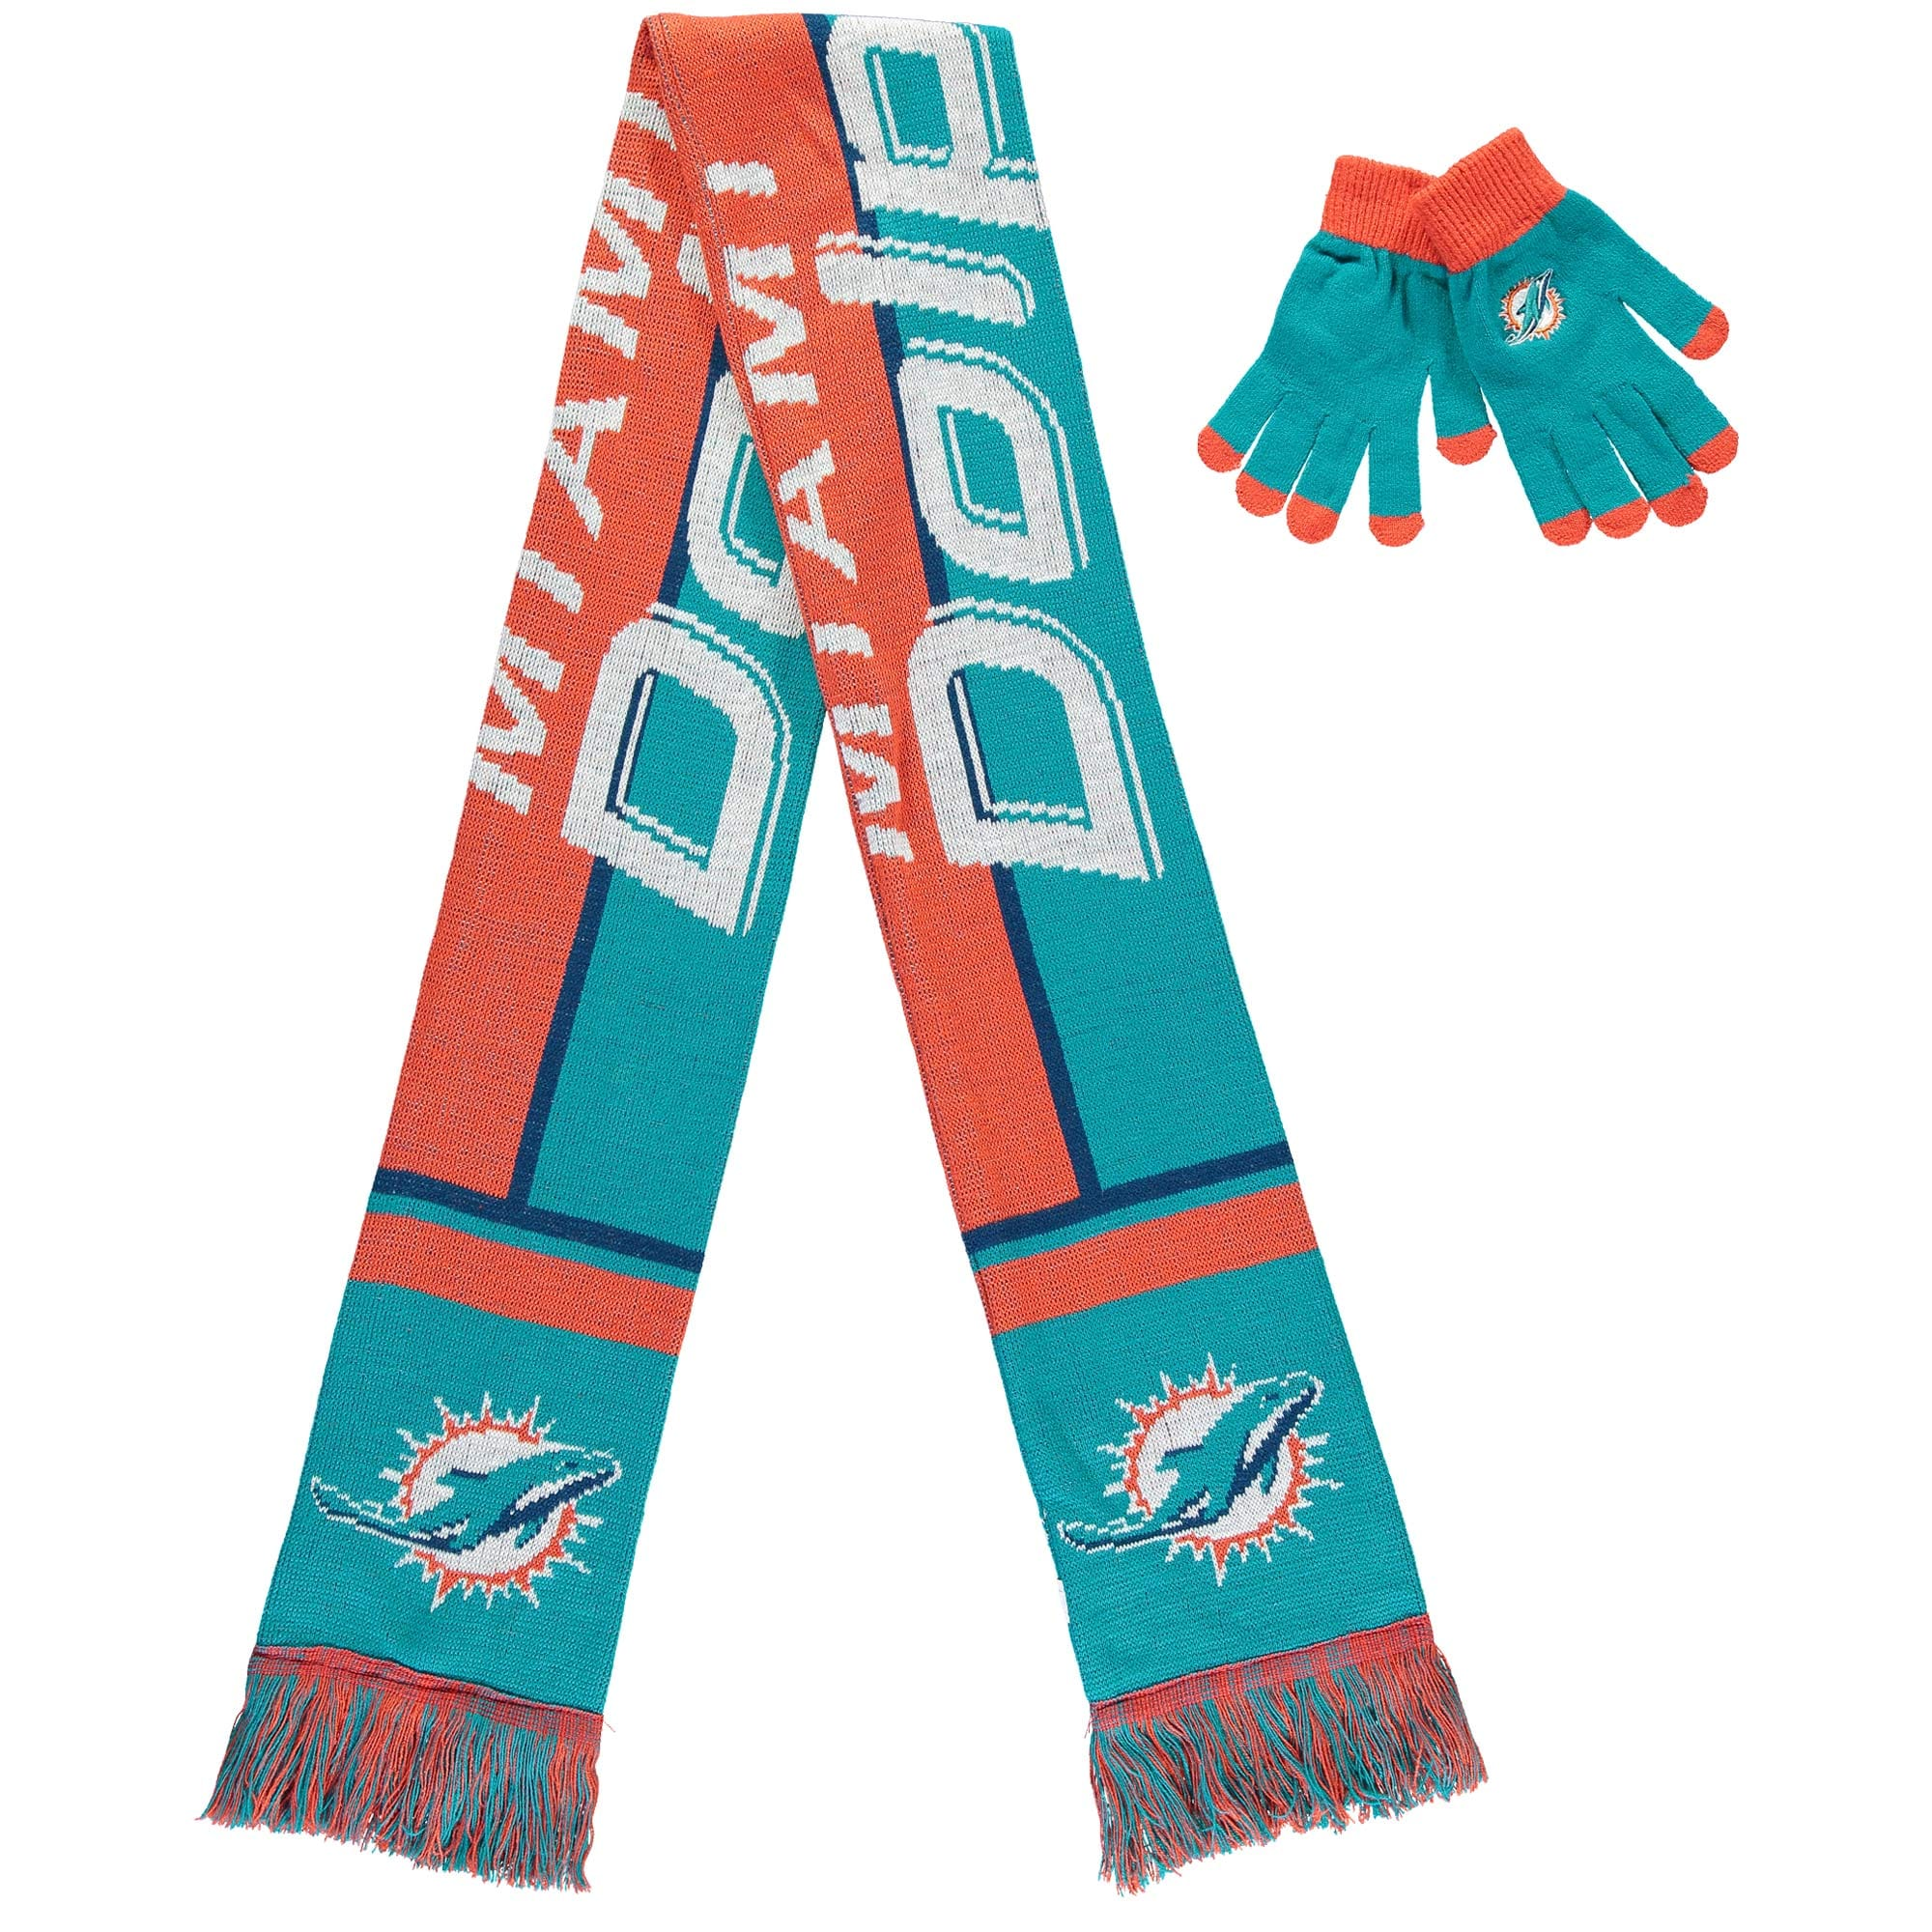 Miami Dolphins Women's Gloves And Scarf Set